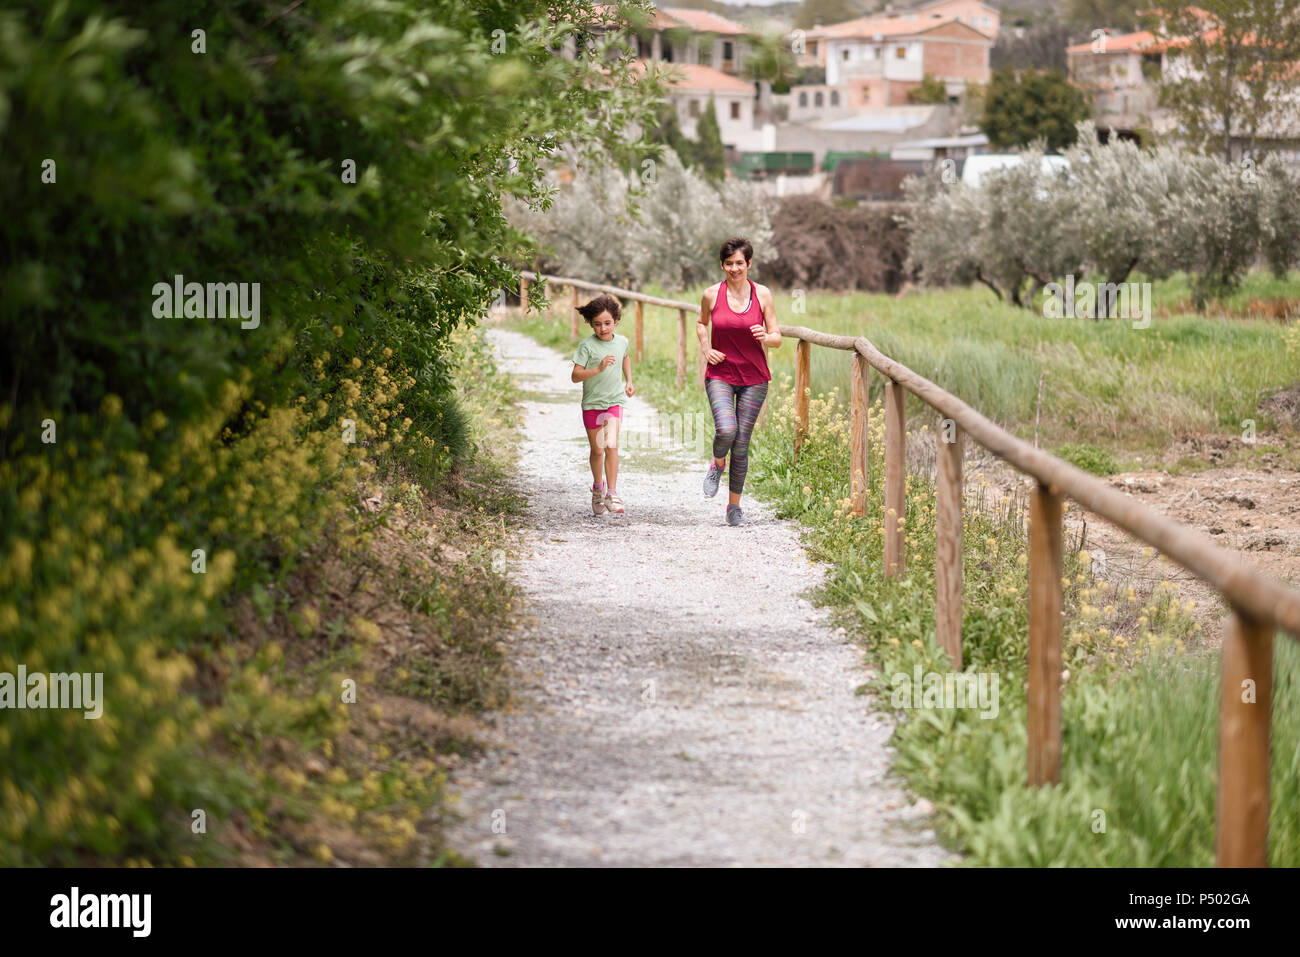 Mother and daughter running on a path in nature enviroment - Stock Image